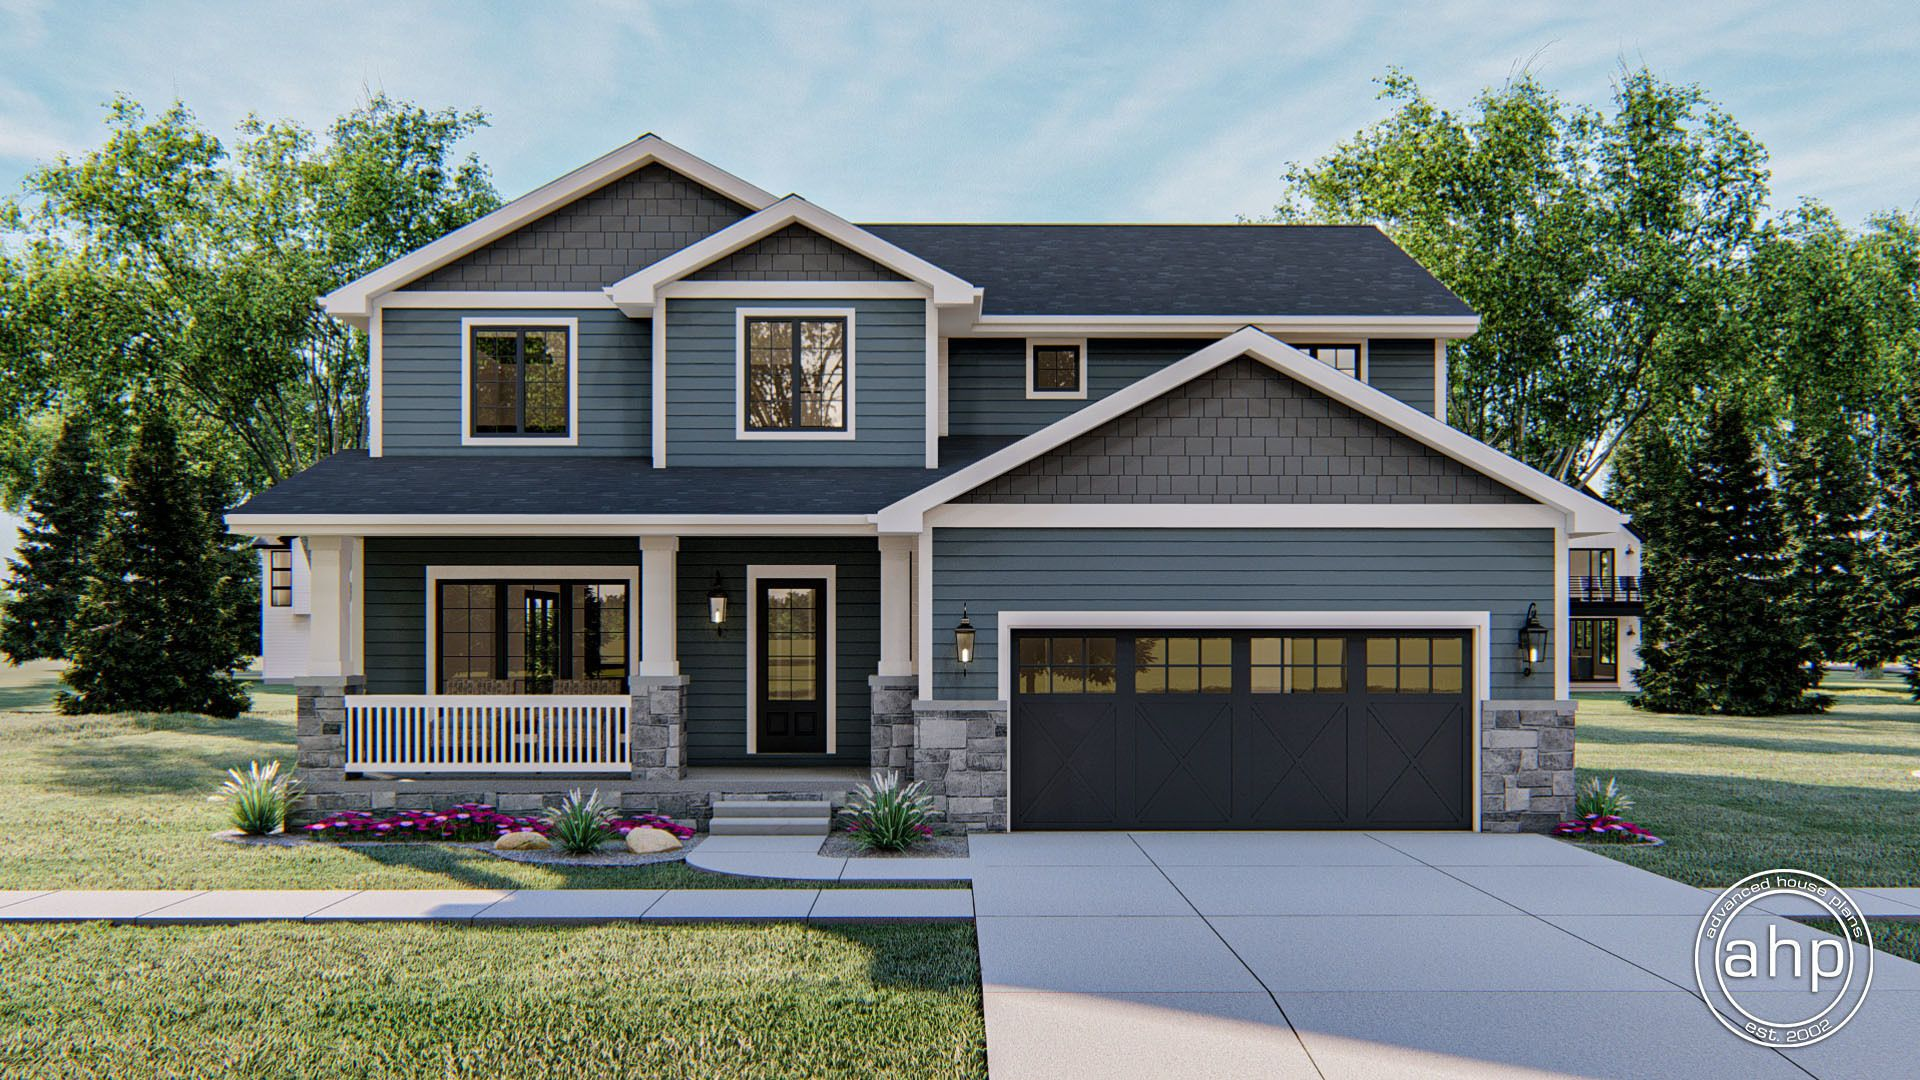 2 Story Craftsman Style House Plan Heritage Heights In 2020 Gray House Exterior House Exterior Blue Craftsman House Plan